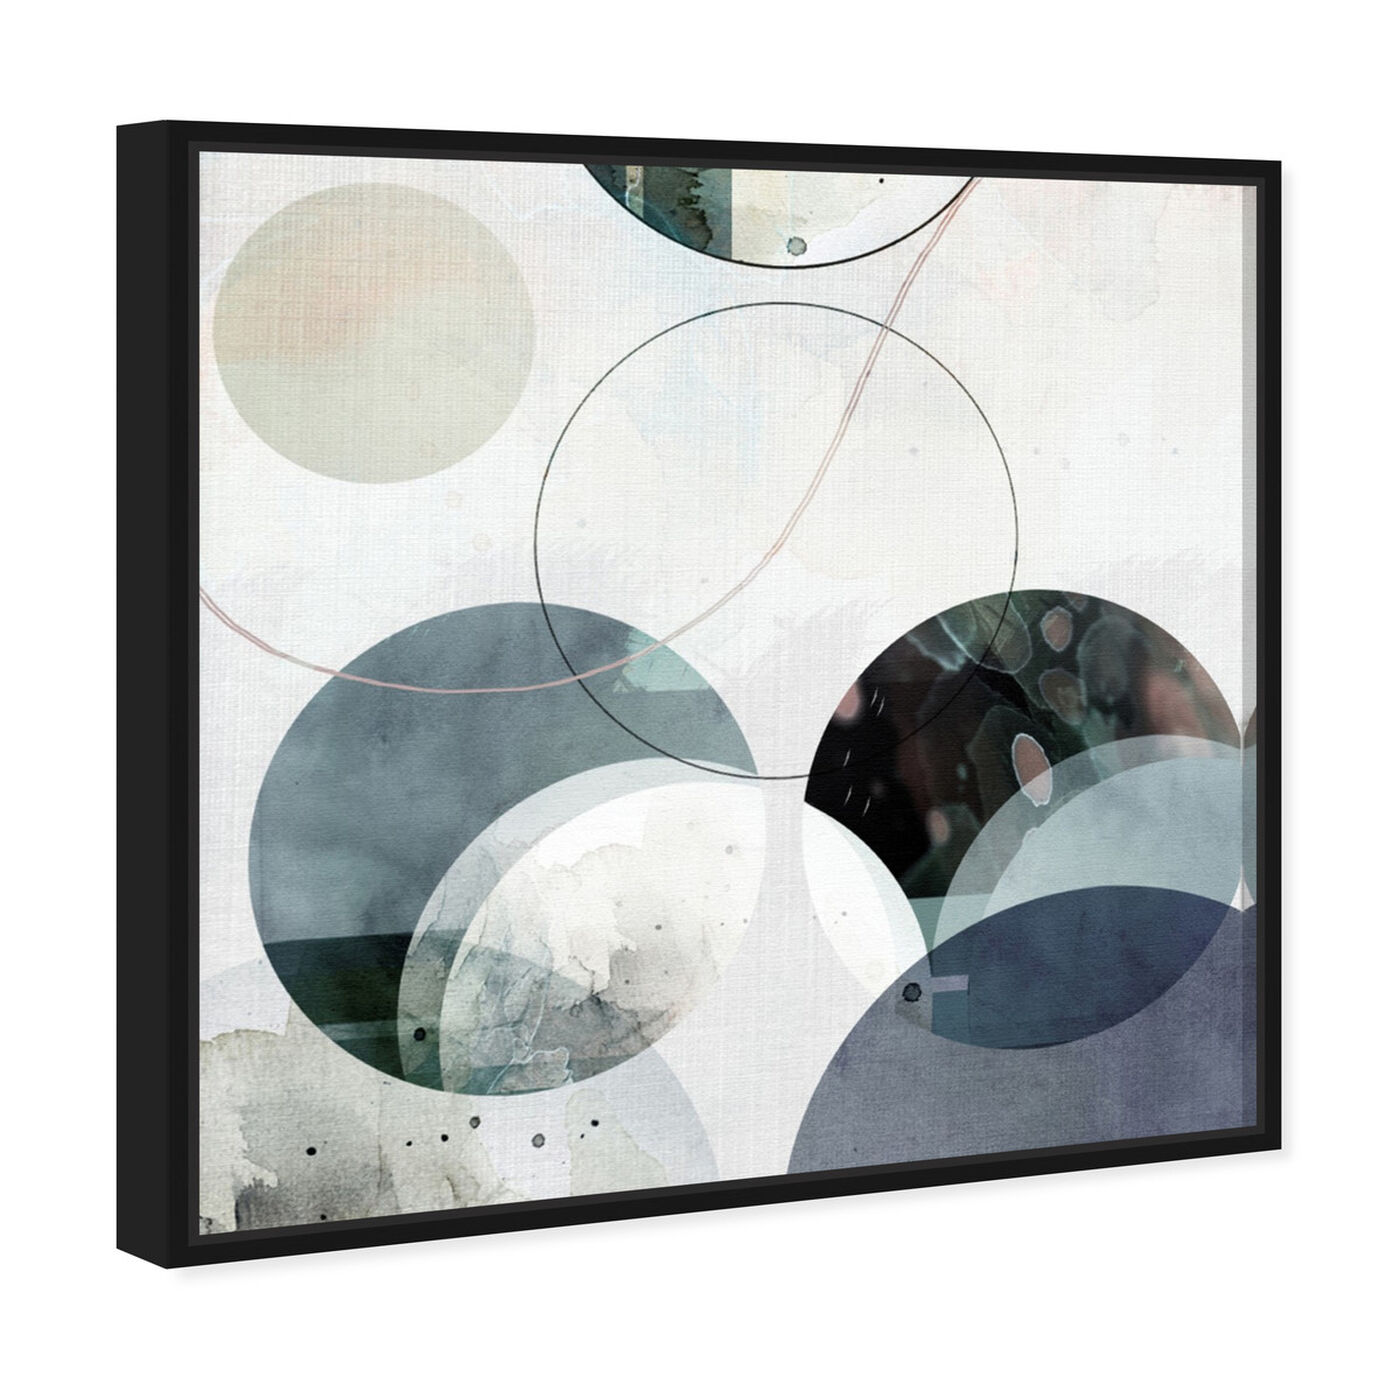 Angled view of River Stones featuring abstract and geometric art.